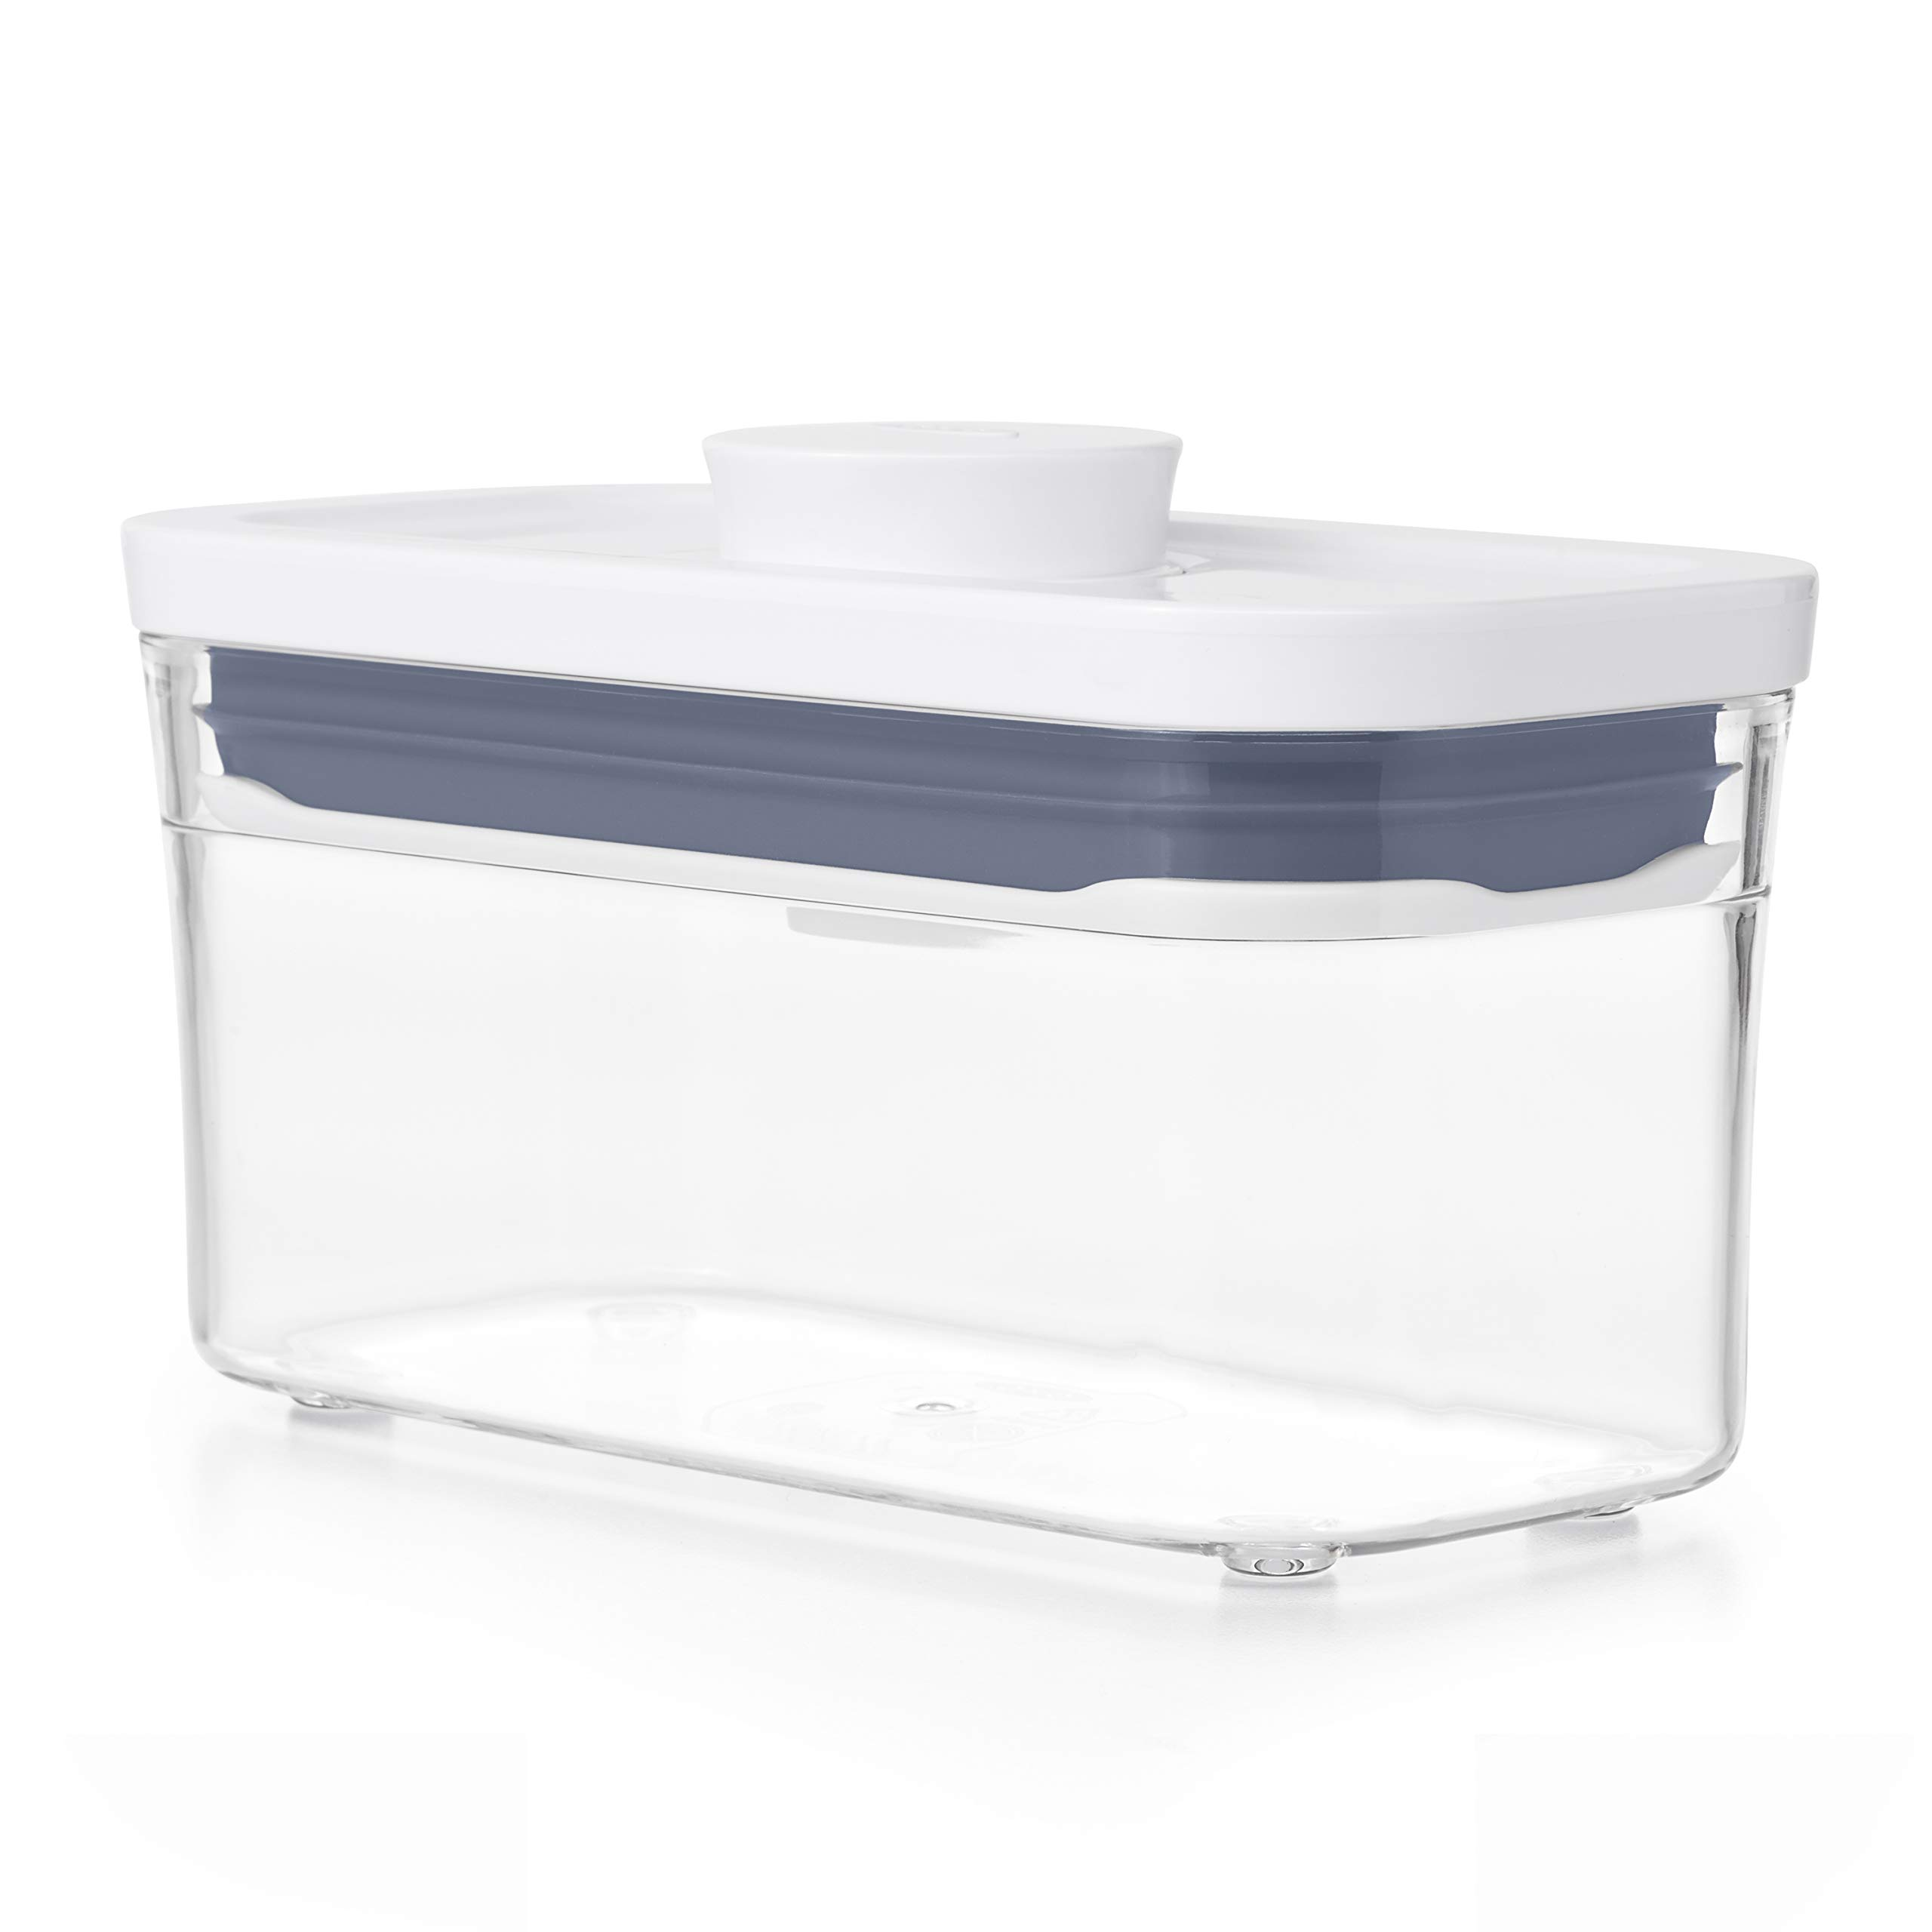 NEW OXO Good Grips POP Container - Airtight Food Storage - 0.4 Qt for Baking Soda and More